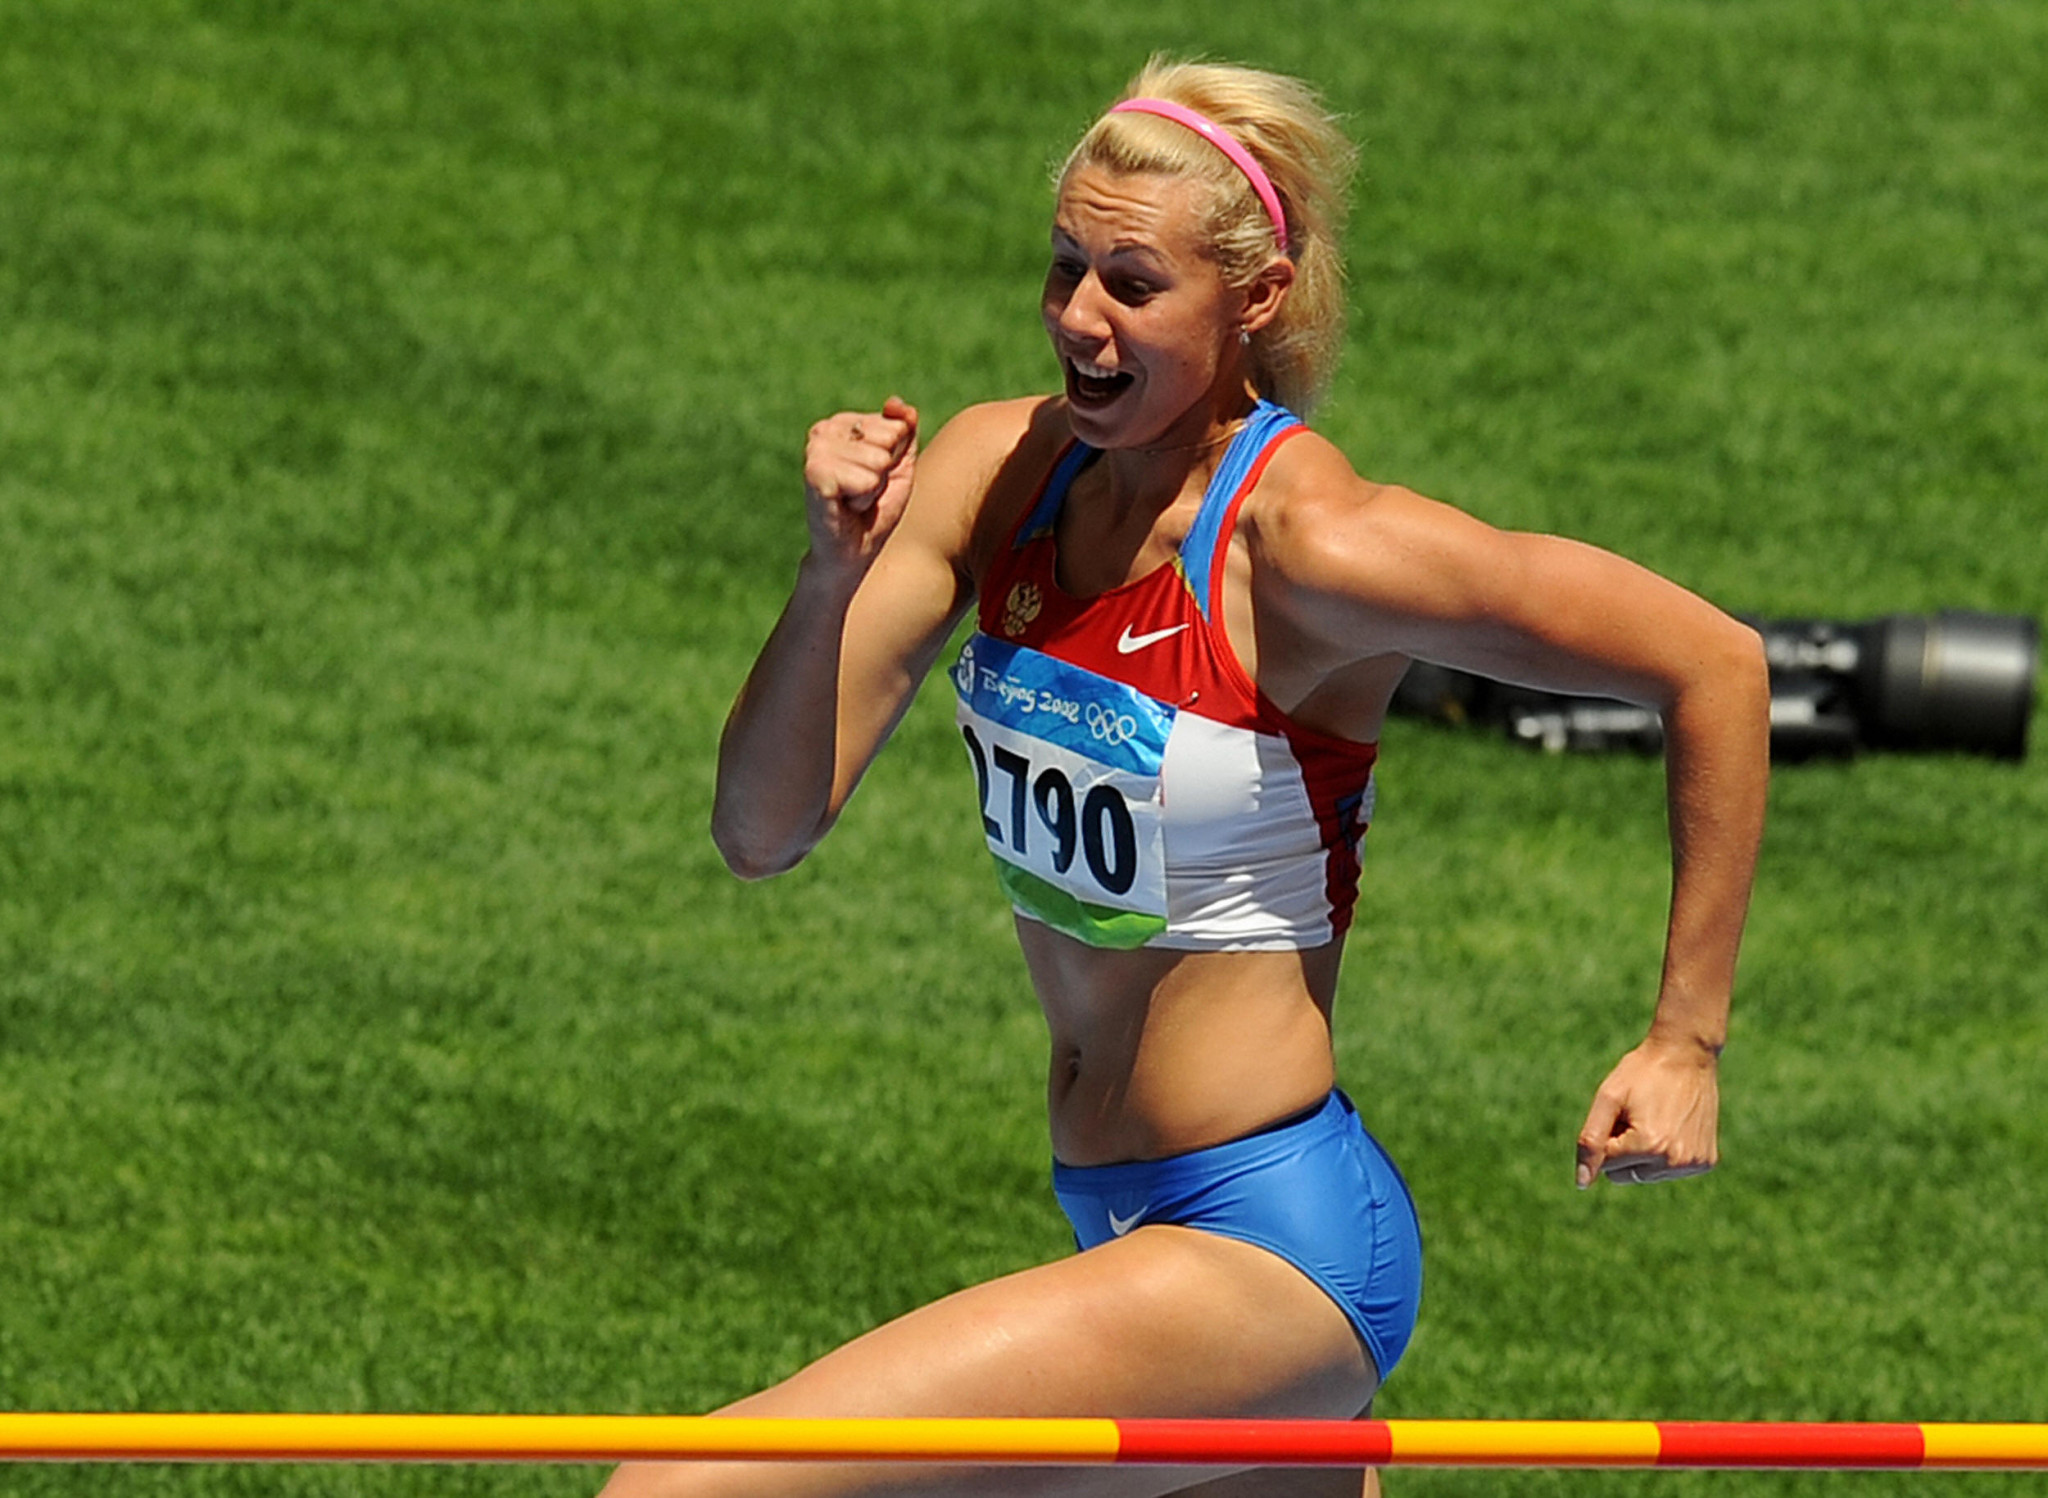 Russia's Tatyana Chernova has officially been stripped of her Olympic heptathlon bronze medal from Beijing 2008 following a final appeal to the Court of Arbitration for Sport ©Getty Images